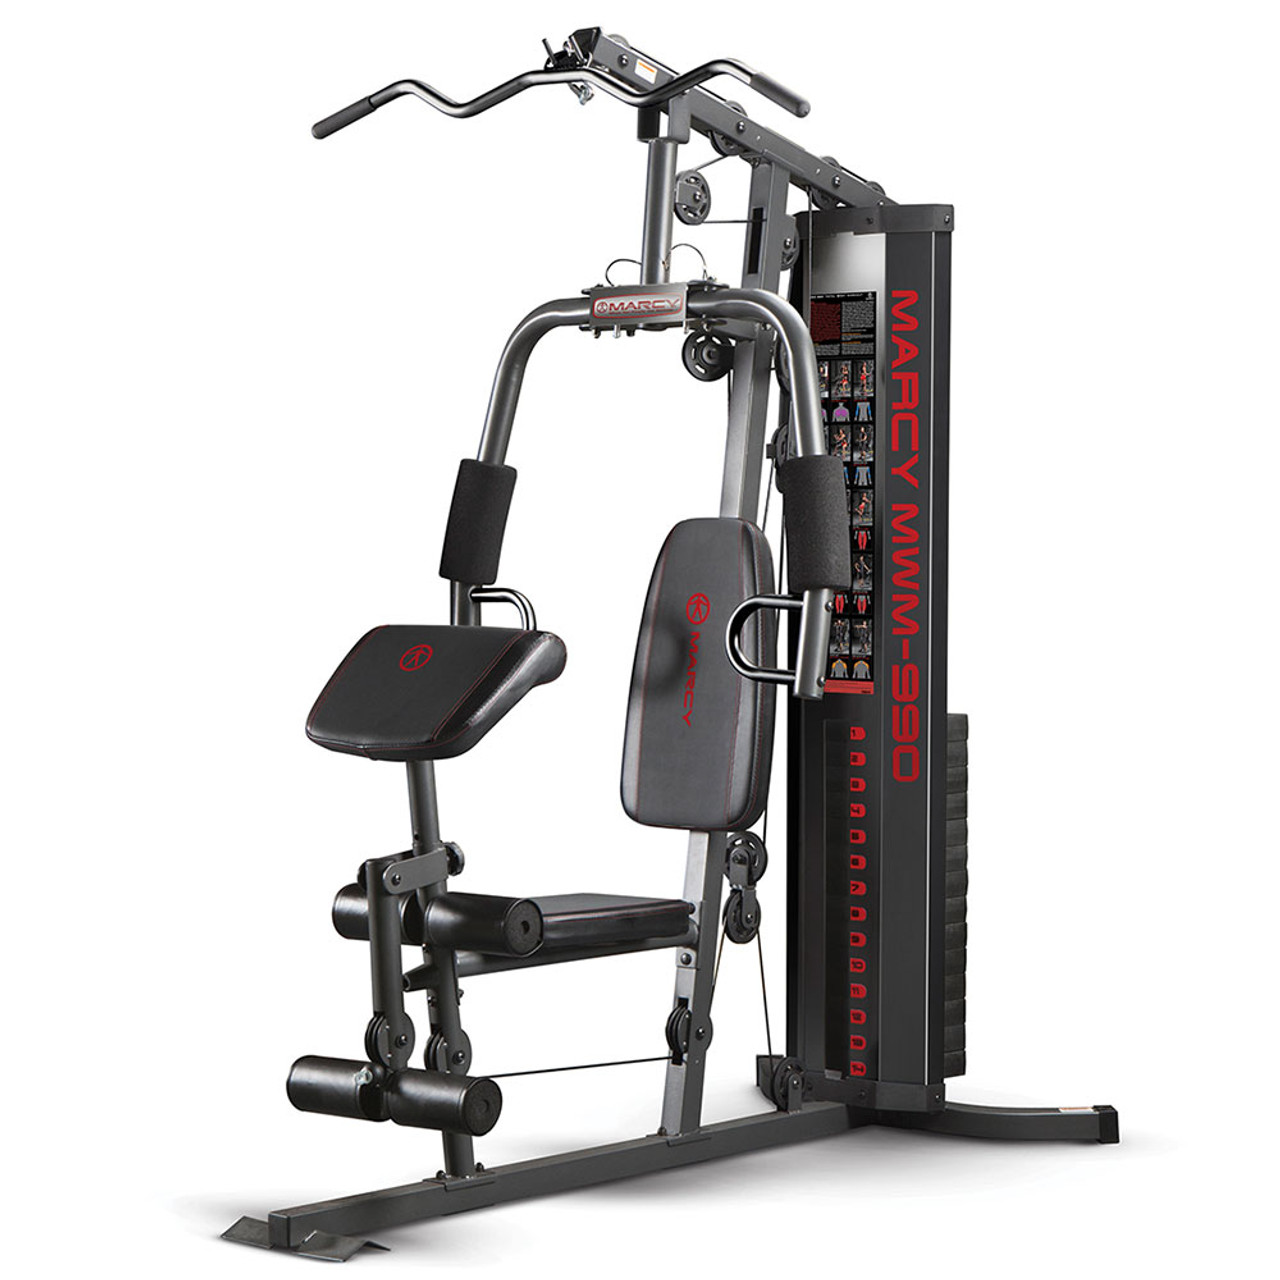 Stack Home Gym MWM 990 is essential for